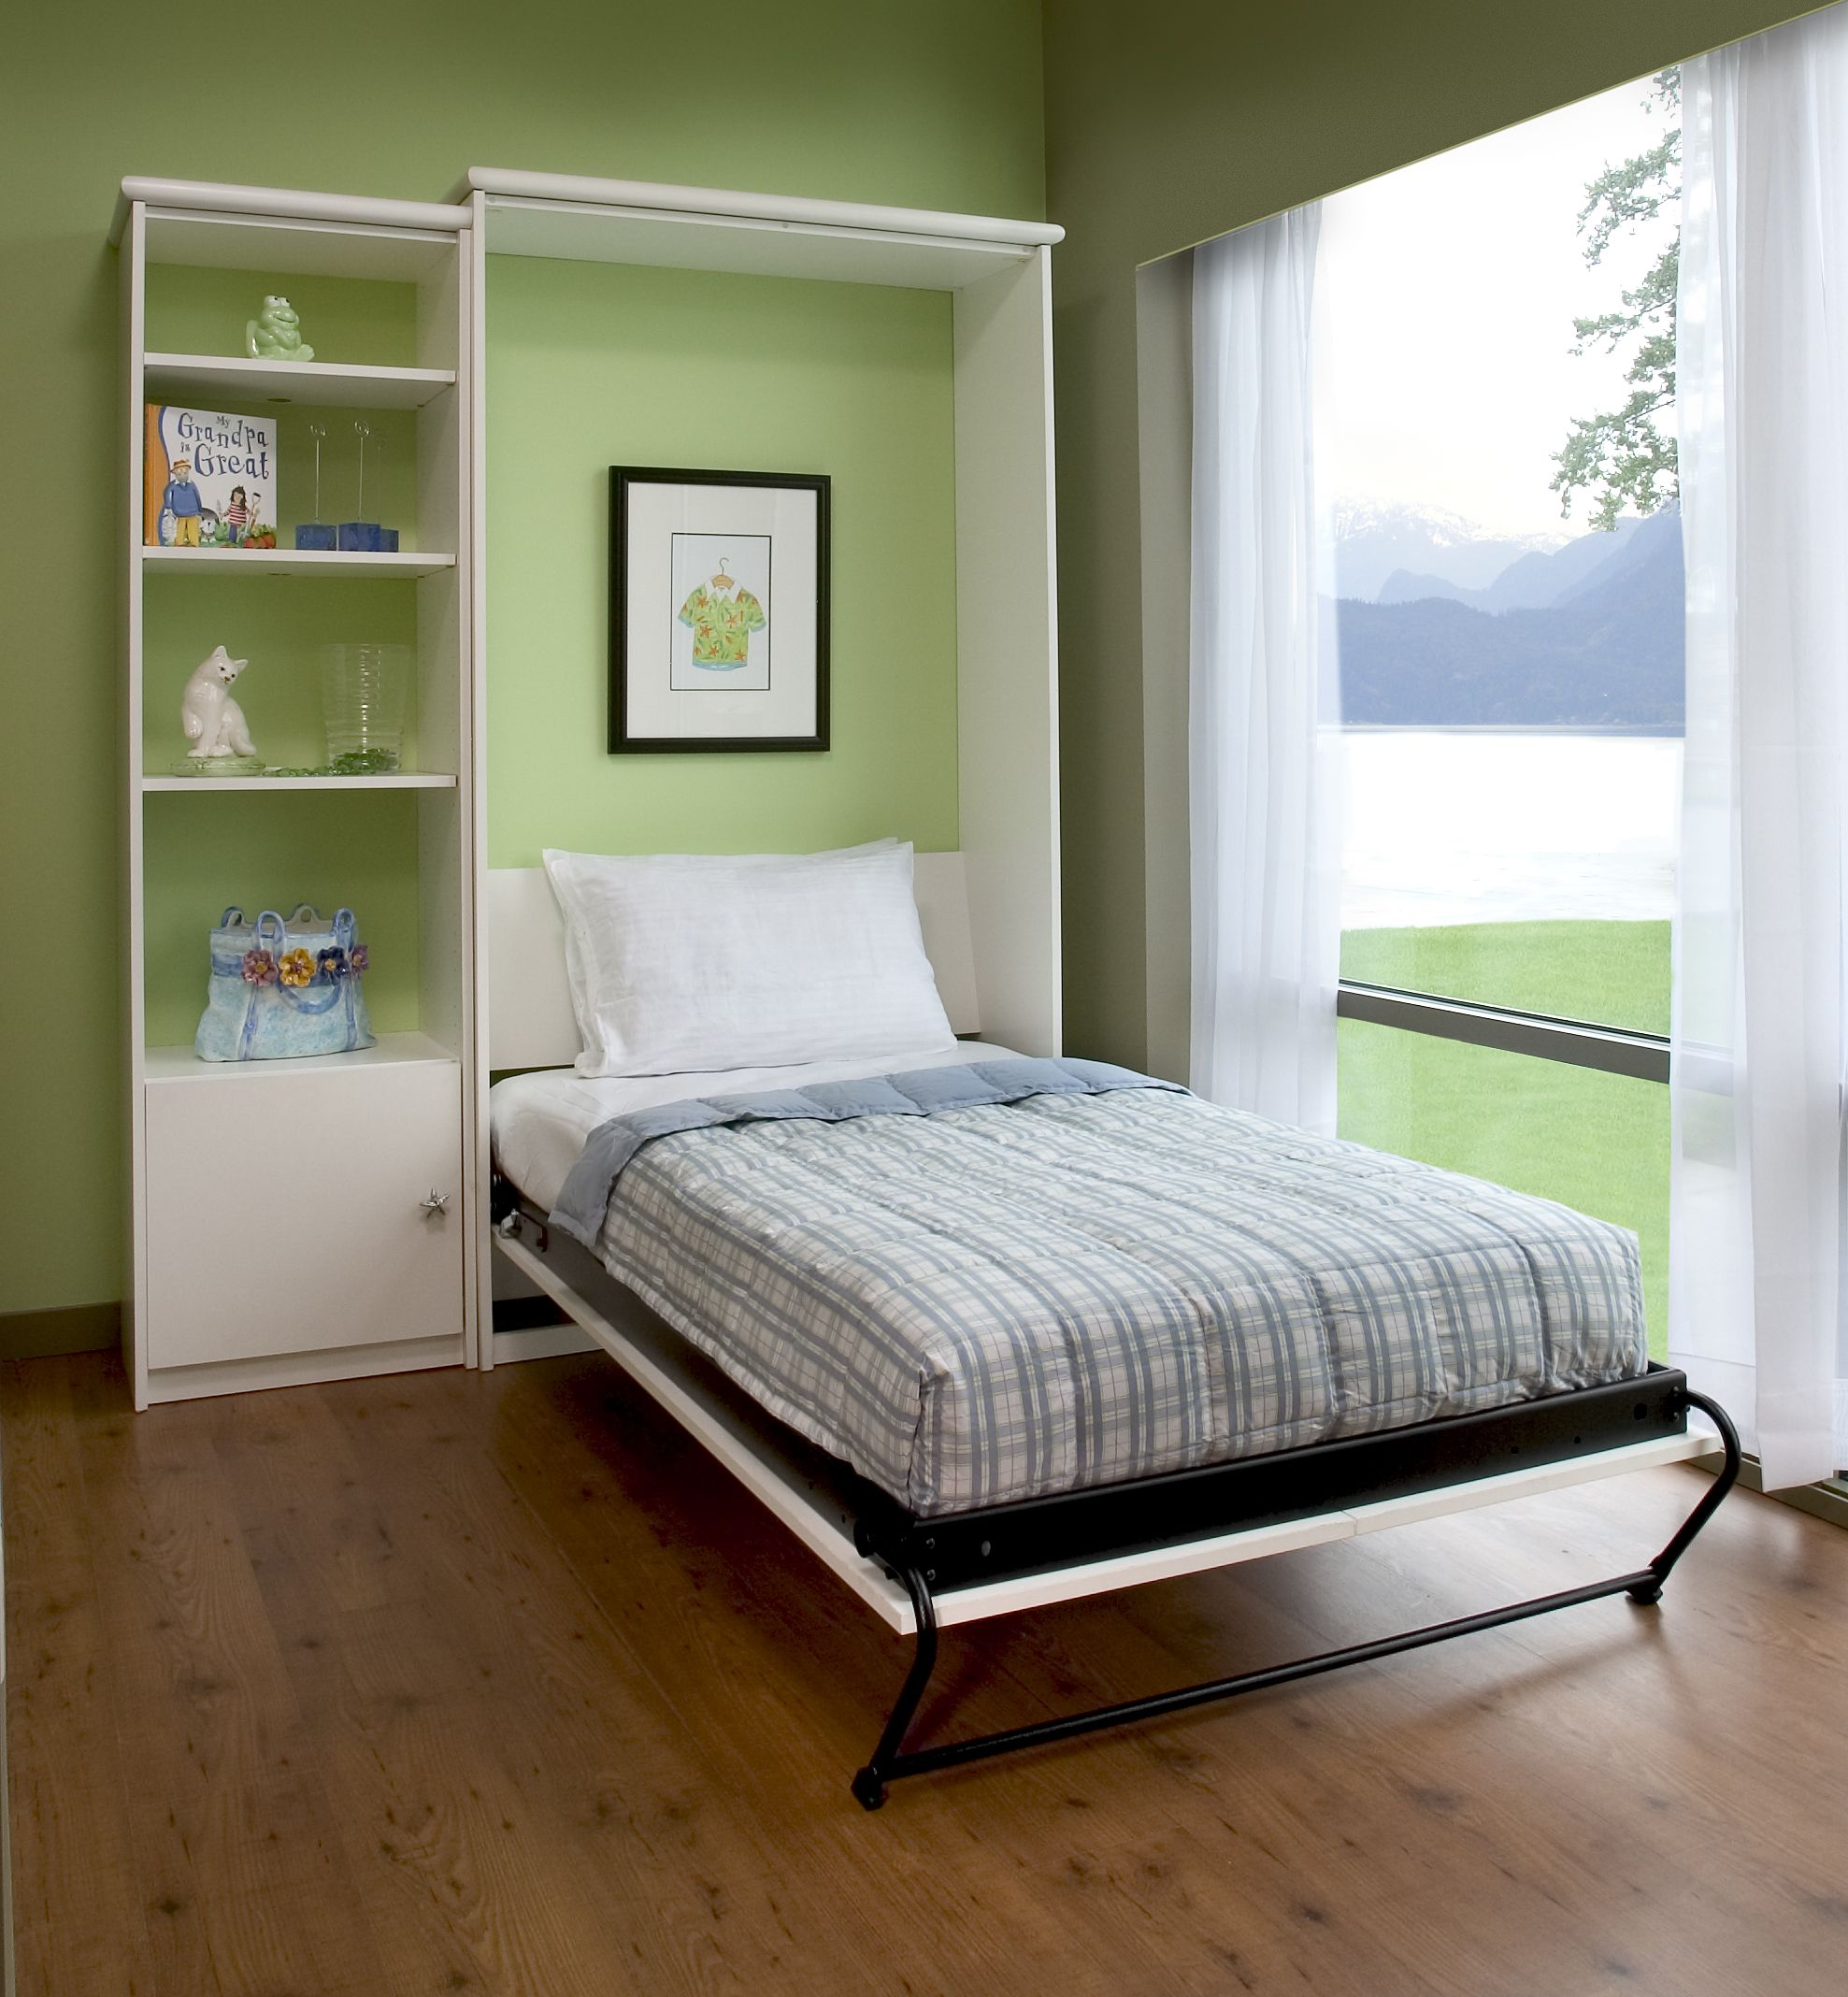 Home Offices are a great place for a murphy bed! Murphy